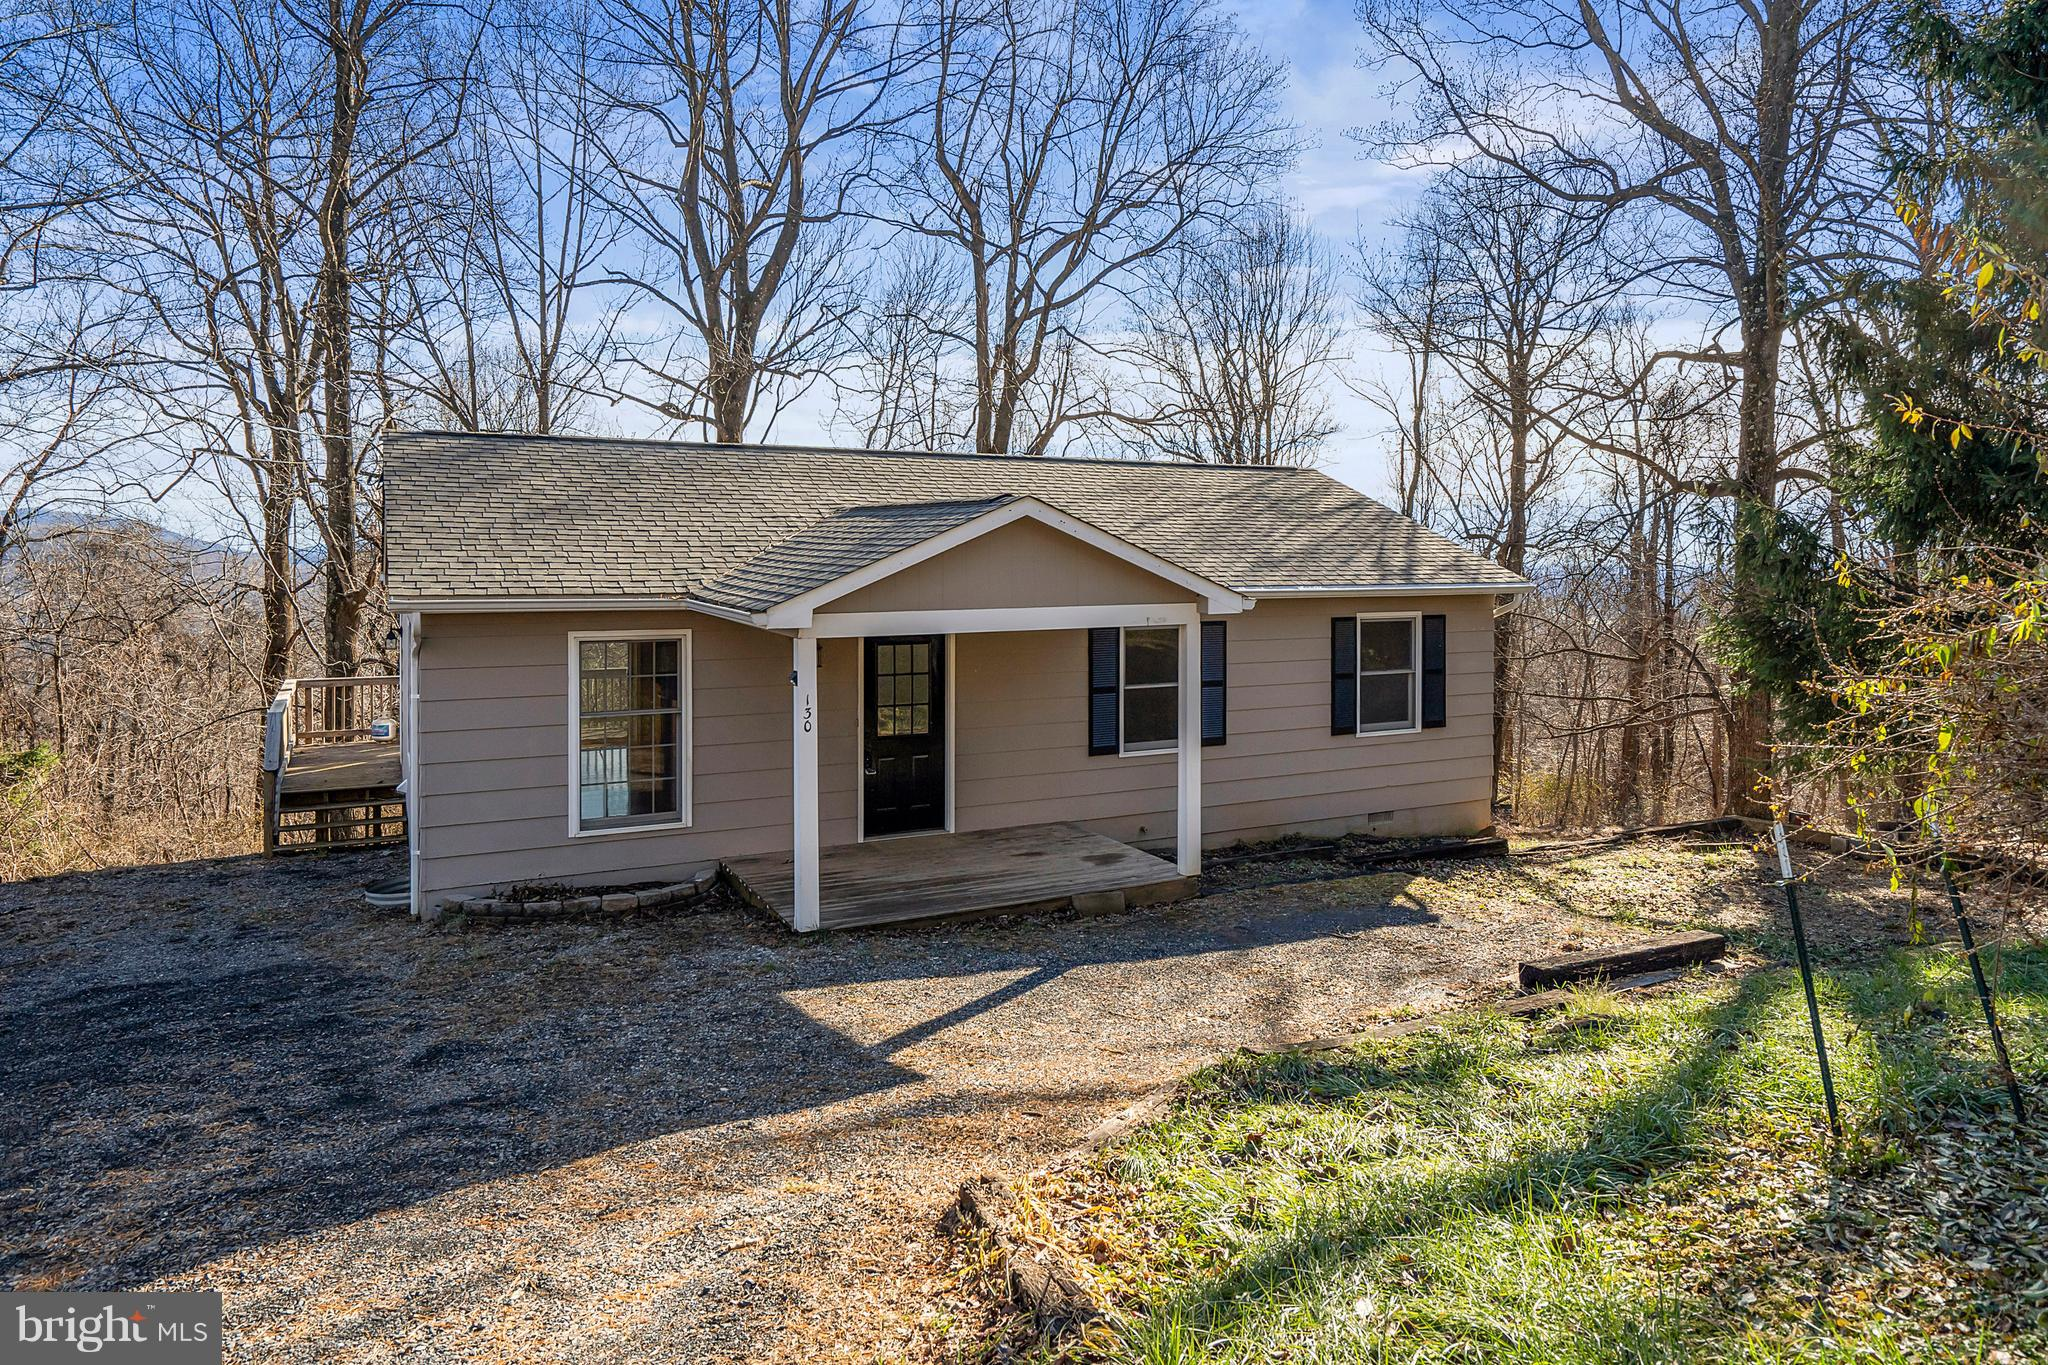 130 FOGGY LANE, CHESTER GAP, VA 22623